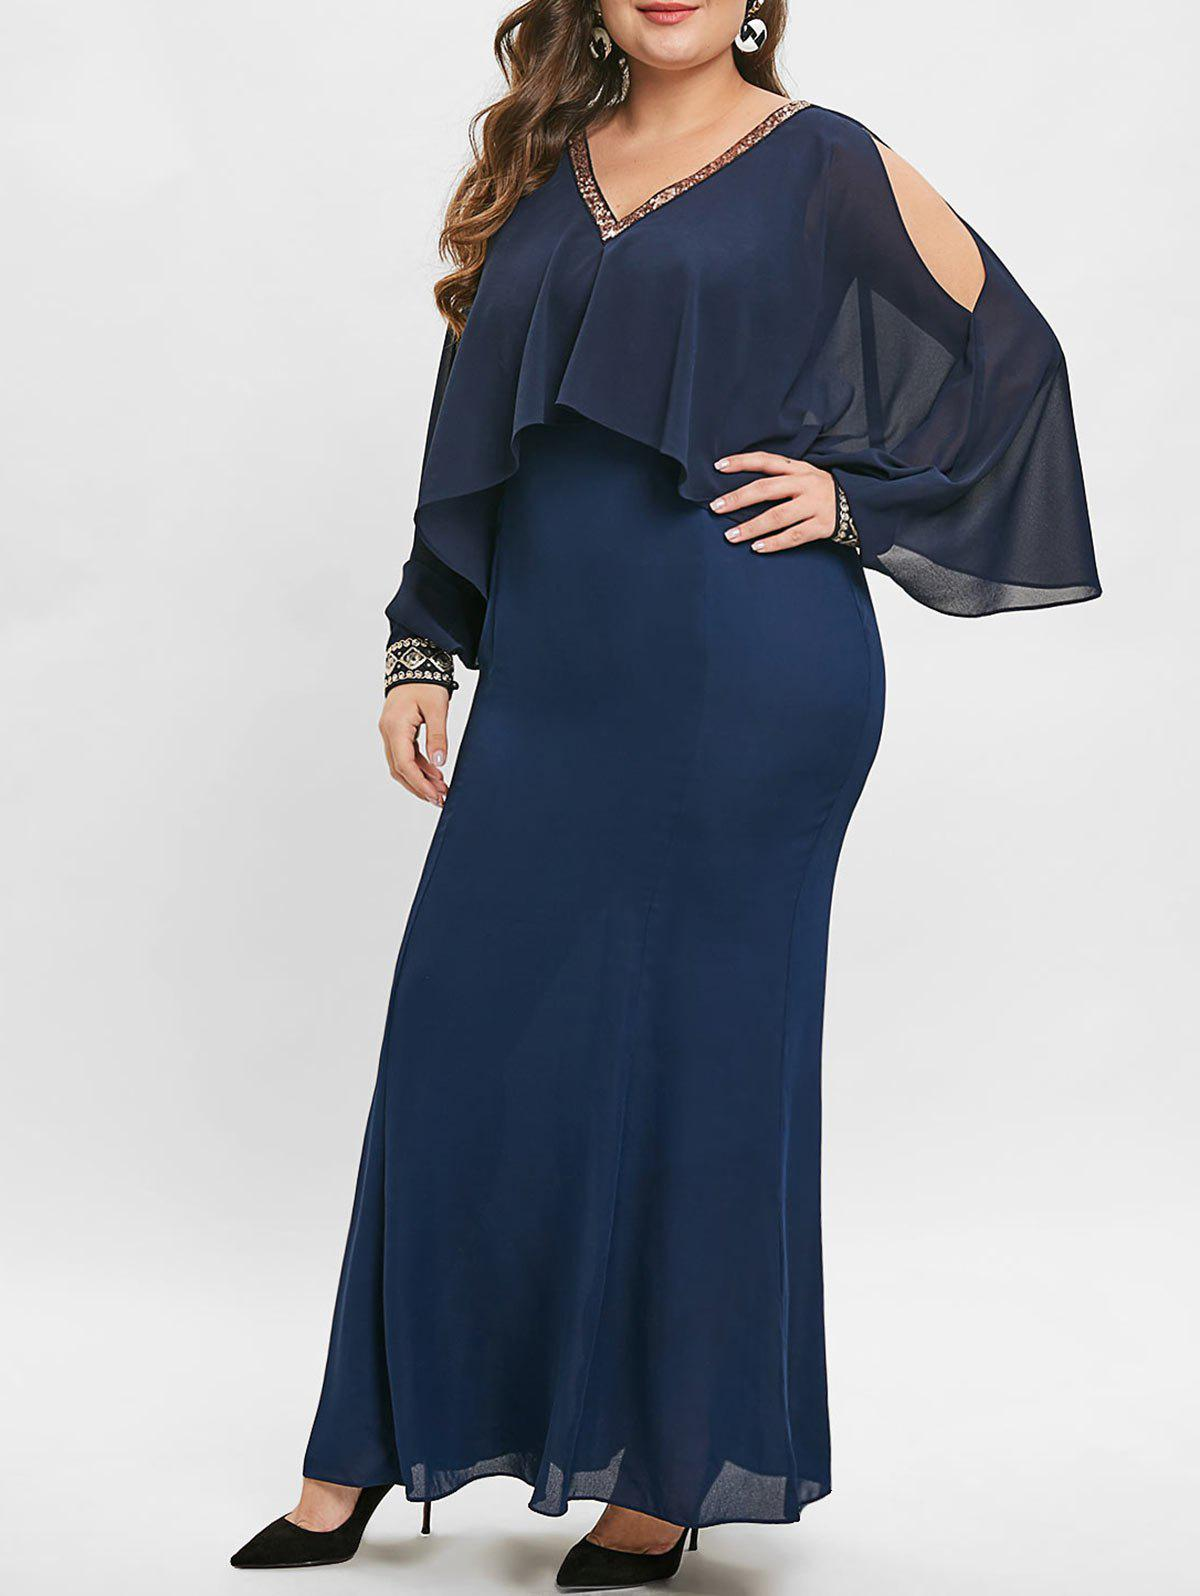 Hot Open Shoulder Plus Size Sequin Embellished Maxi Dress